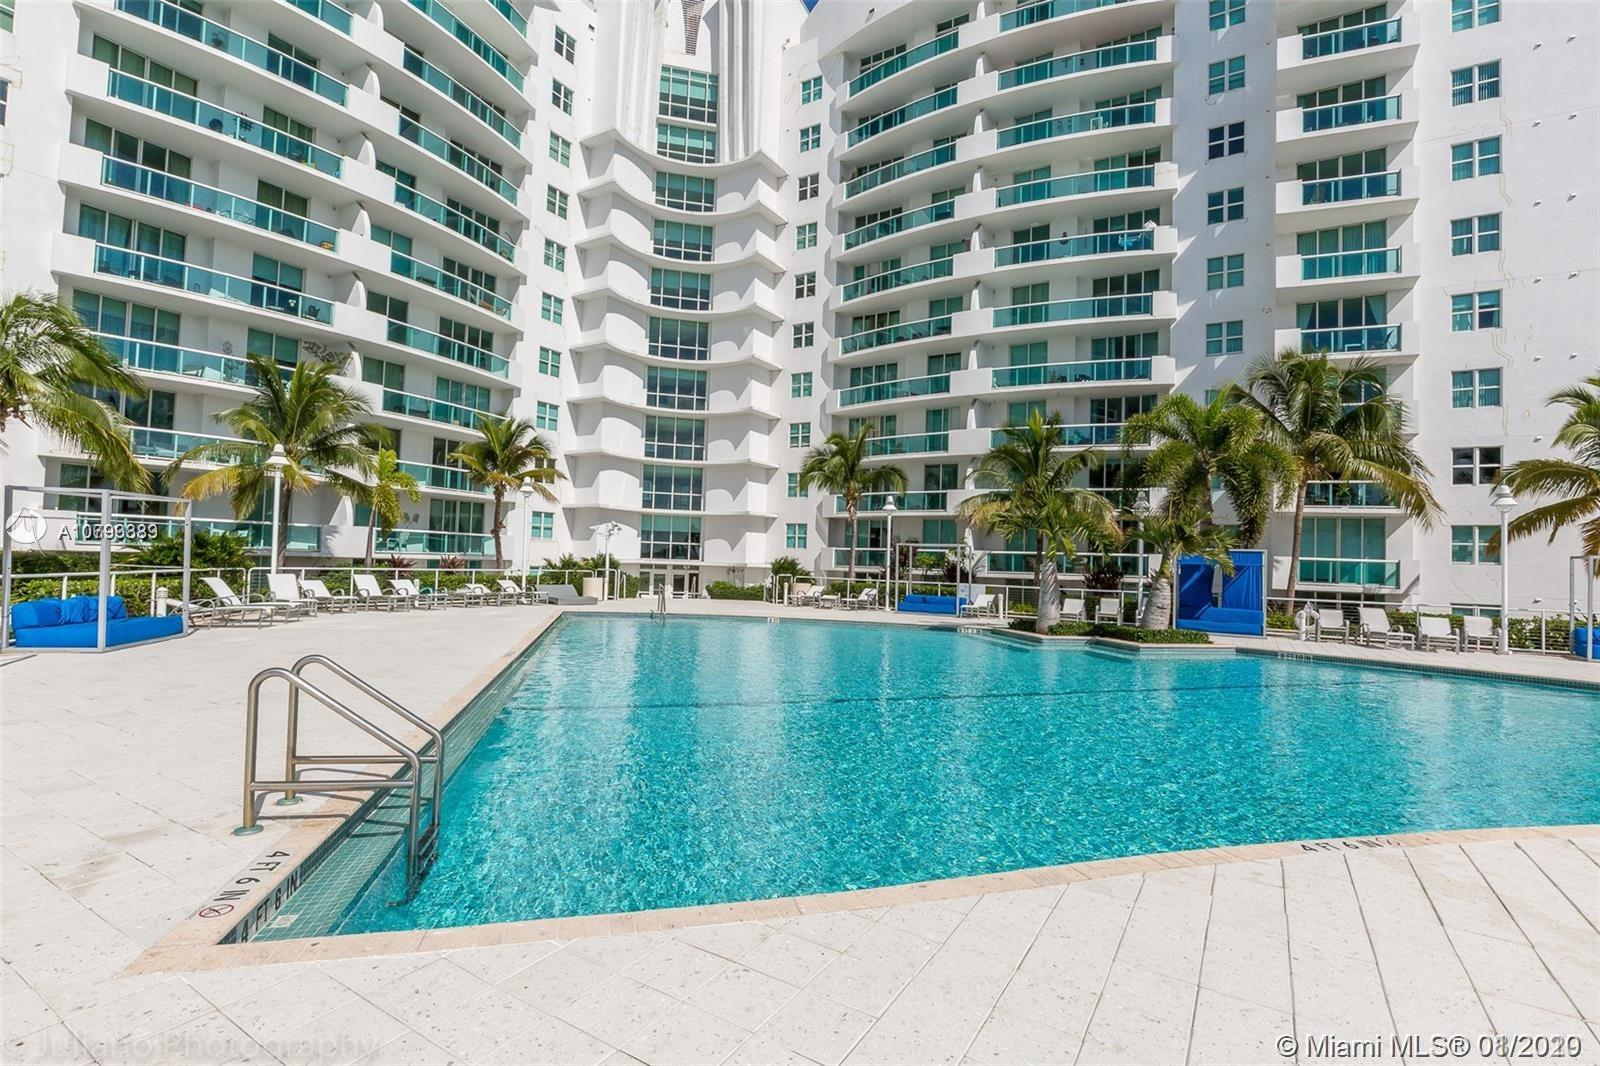 GREAT OPPORTUNITY!!!!!!!!! SALE PRICE THAT WON'T LASTLUXURY WATER FRONT UNIT 2 BED / 2 BATH IN NORTH BAY VILLAGE. MODERN KITCHEN WITH GRANITE COUNTER TOP AND STAINLESS STEEL APPLIANCES. ROMAN TUB IN MASTER BATH ROOM. LARGE BALCONY AND BREATHTAKING VIEWS FROM EVERY ROOM IN UNIT. THIS COMMUNITY OFFERS AMAZING AMENITIES INCLUDING GYM, SAUNA, 2 POOLS, CLUB HOUSE, 24 HRS GATED SECURITY WITH VALET, LOTS OF GUEST PARKING AND A PRIVATE MARINA.